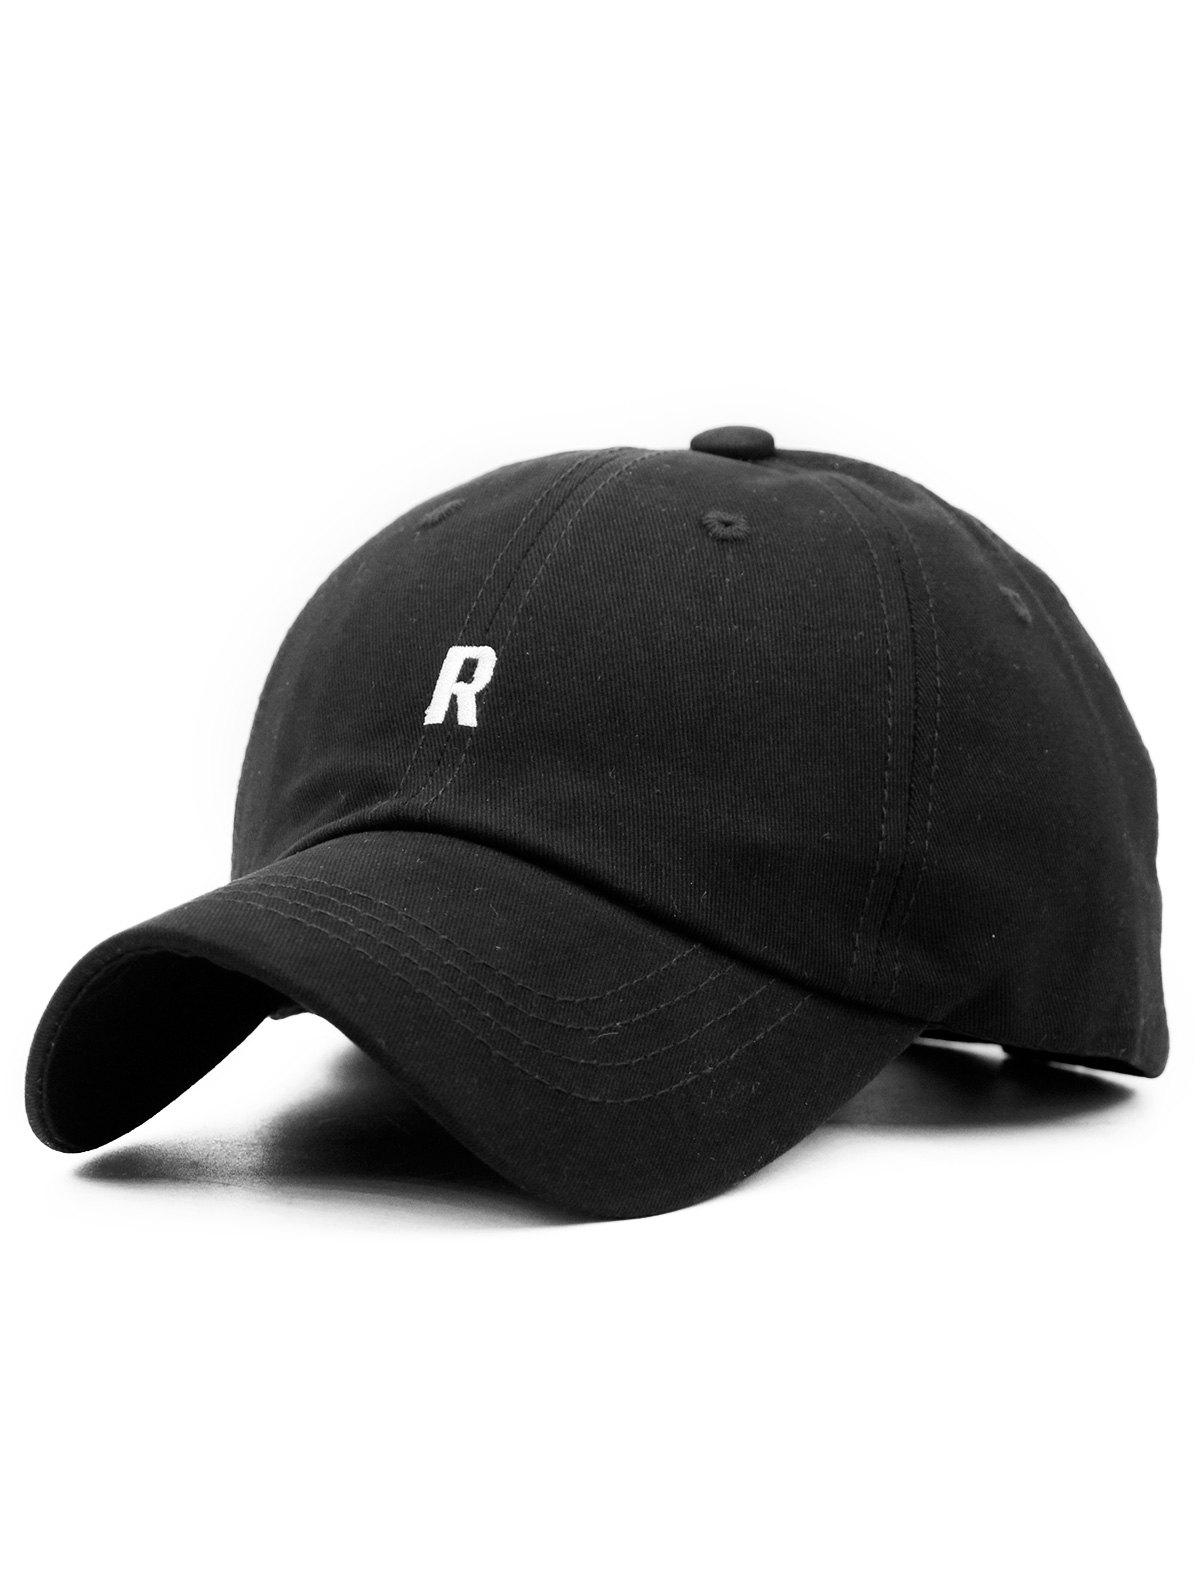 Letter R Embroidery Adjustable Hip Hop Hat - BLACK